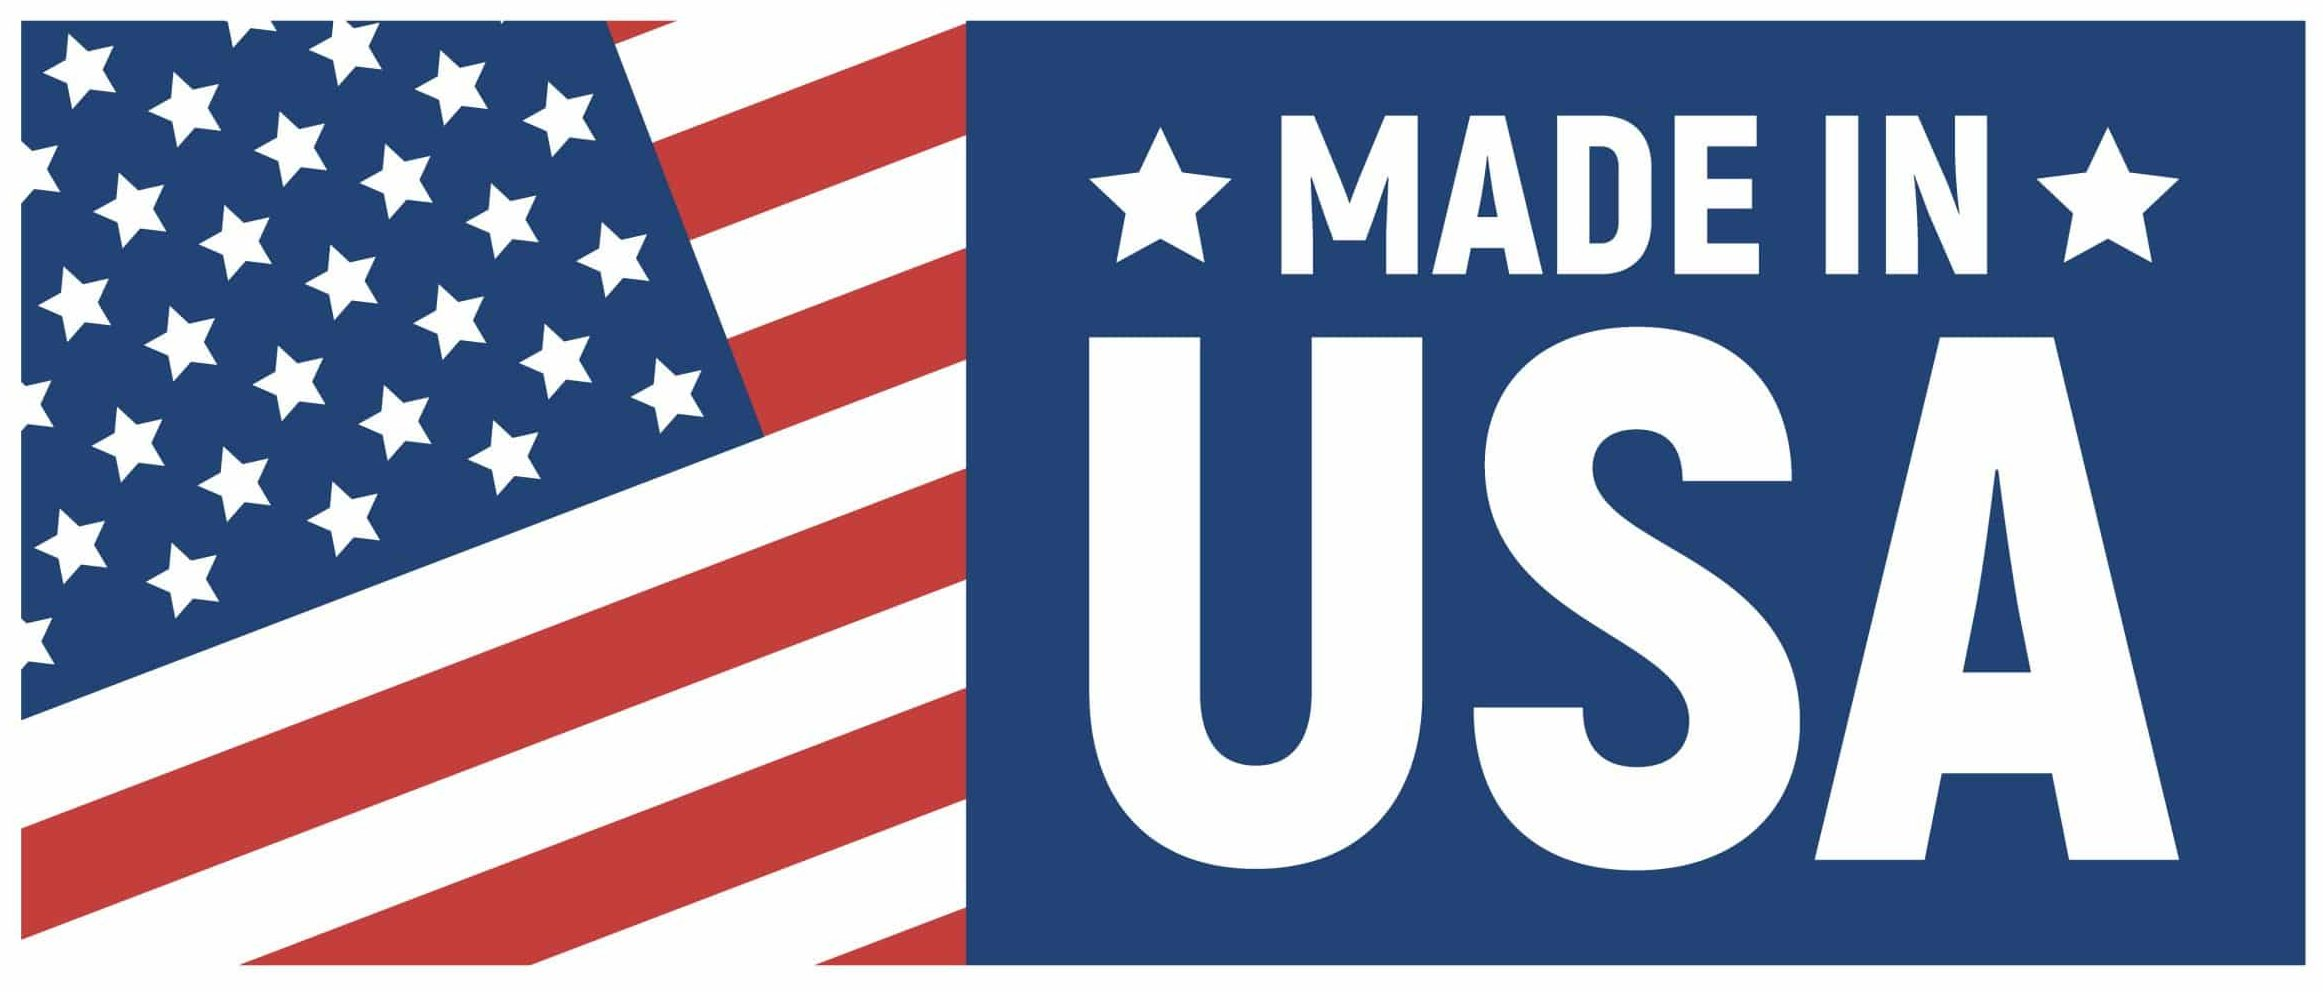 Made in USA label.